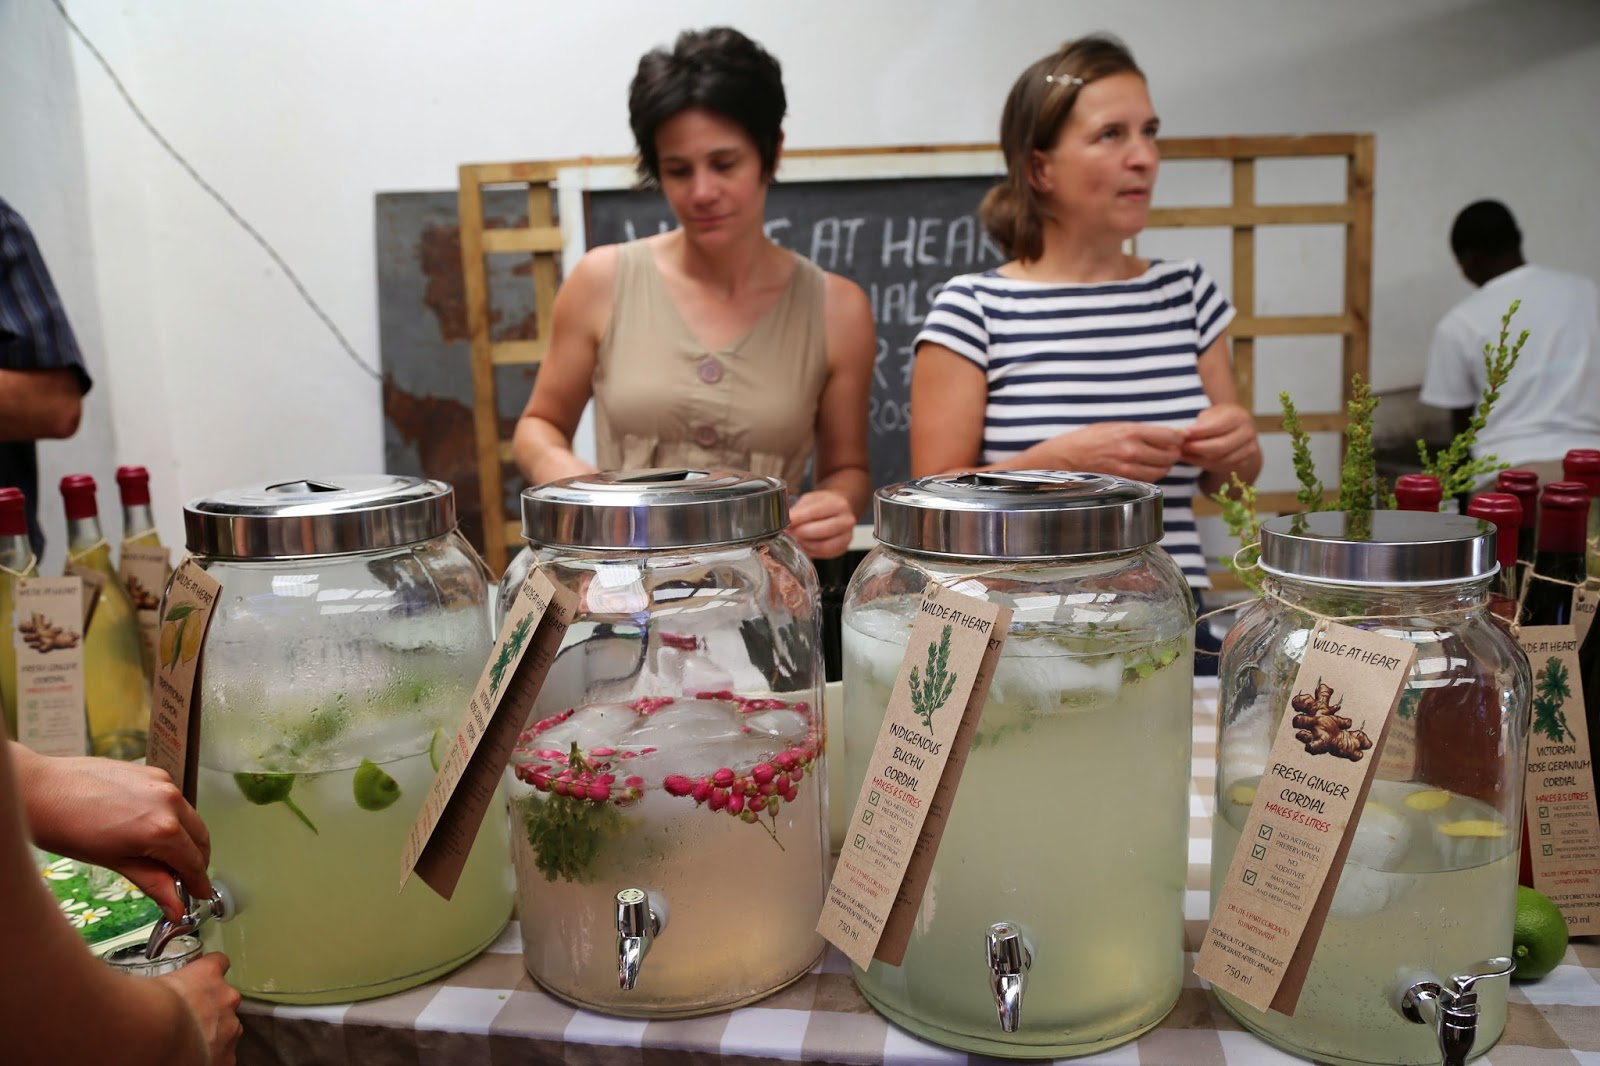 Cordials by Wilde at Heart, Old Biscuit Mill, Cape Town (including Buchu, a local mint-like herb)